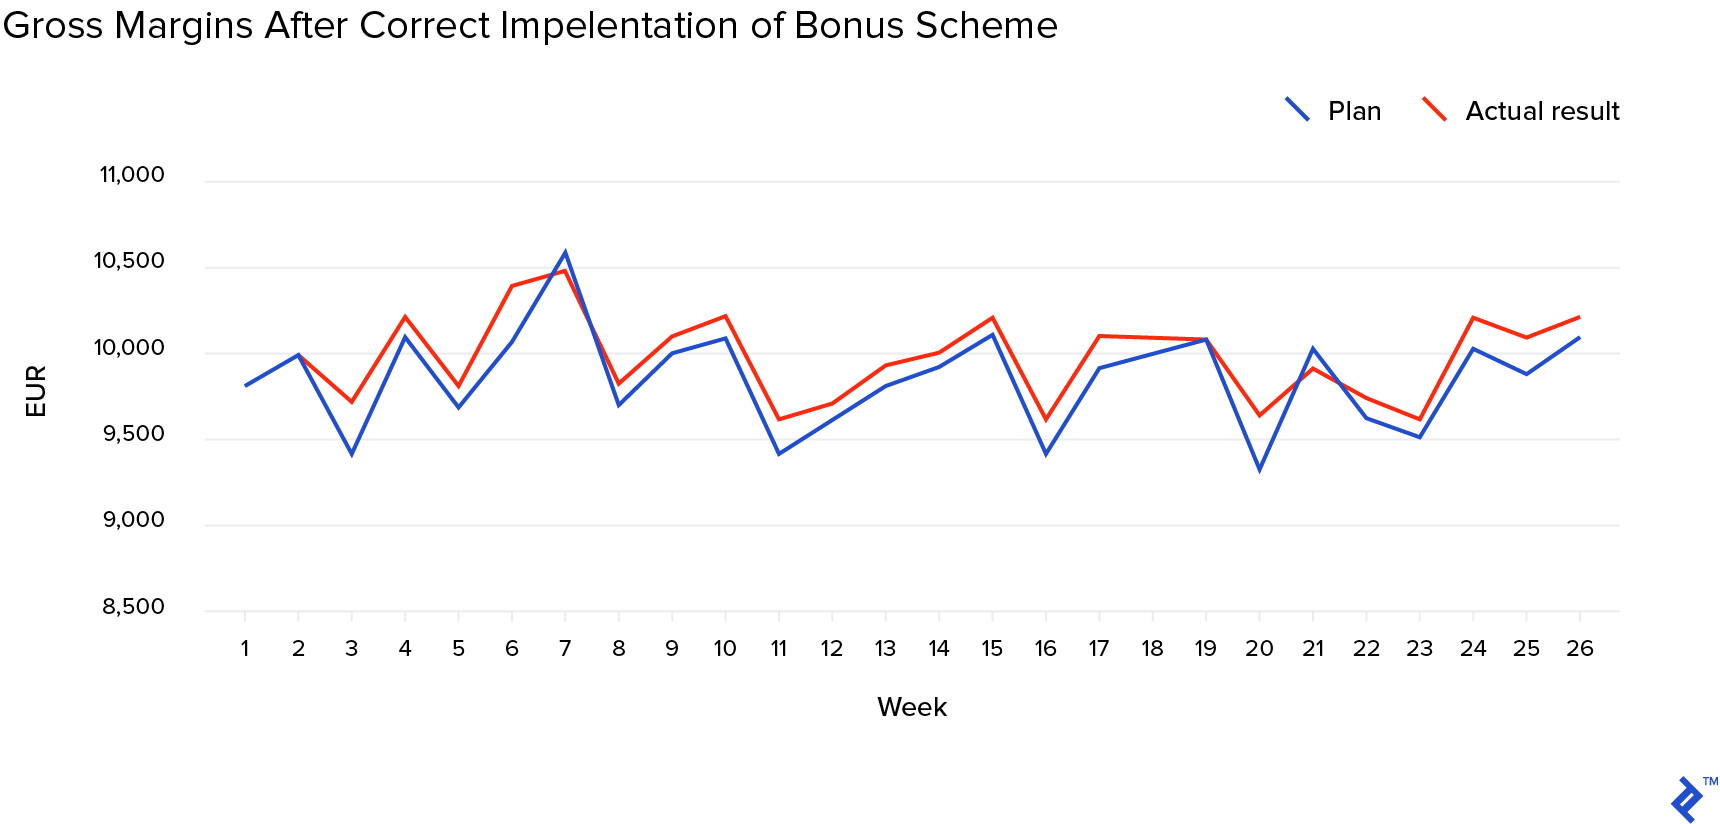 Gross margins after correct implementation of bonus scheme